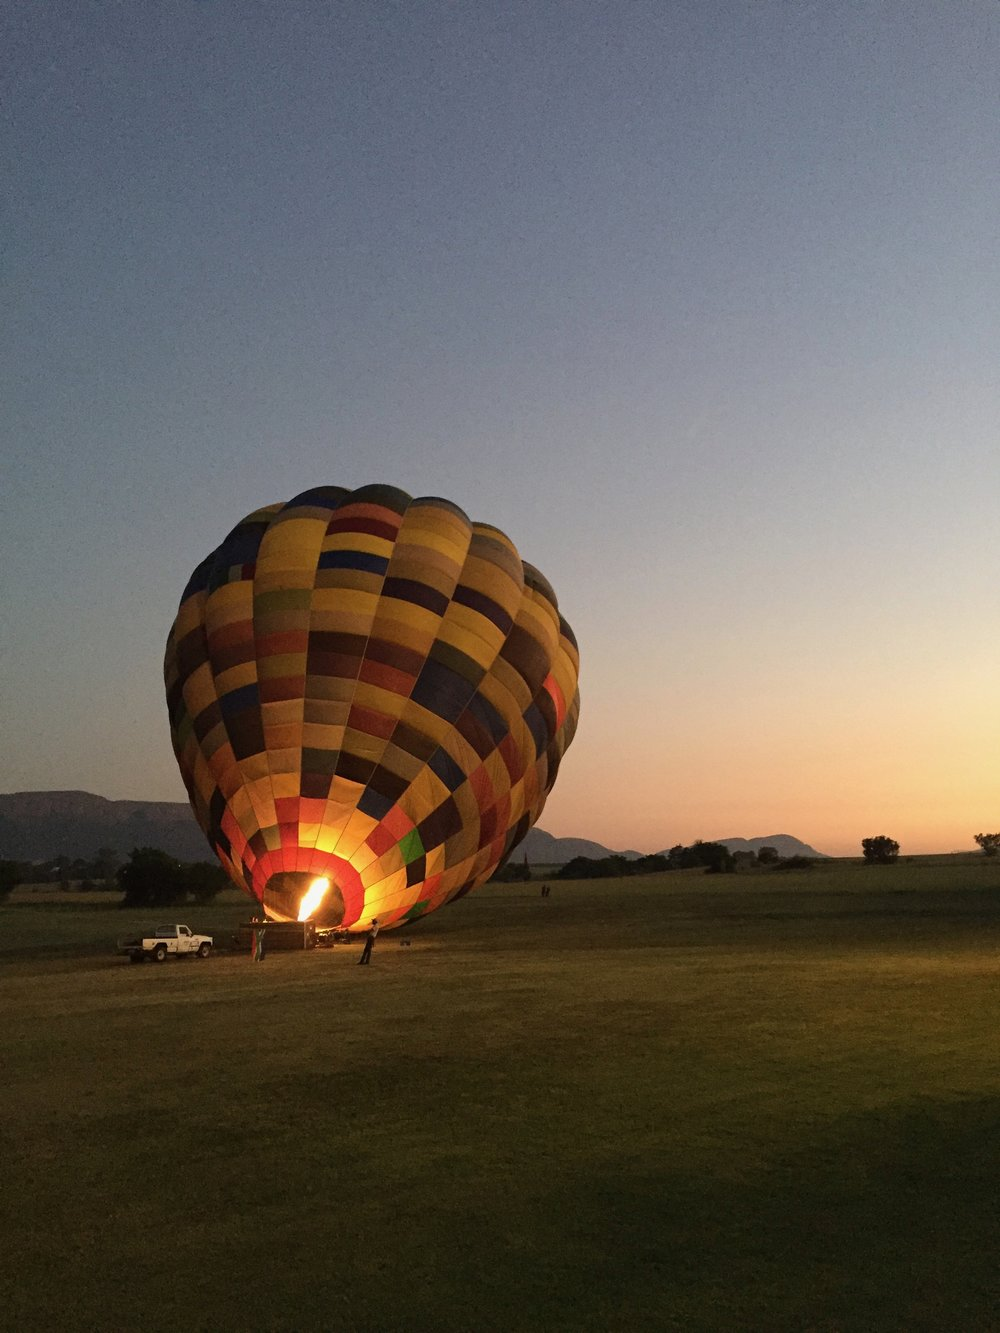 Prepping for an early morning hot air ballon ride over the Magaliesberg mountains.   Magaliesberg, South Africa - 2016